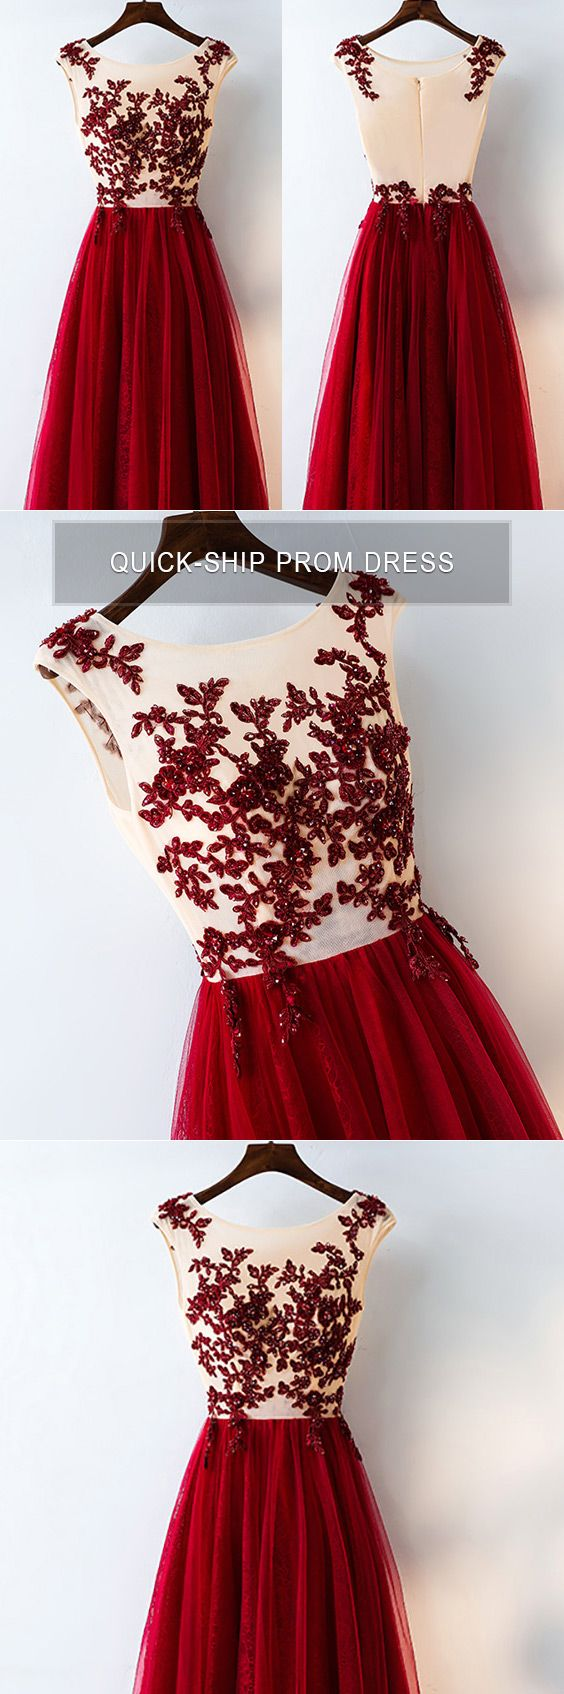 Formal Red Sequined Tulle Prom Dress Long With Lace # ...